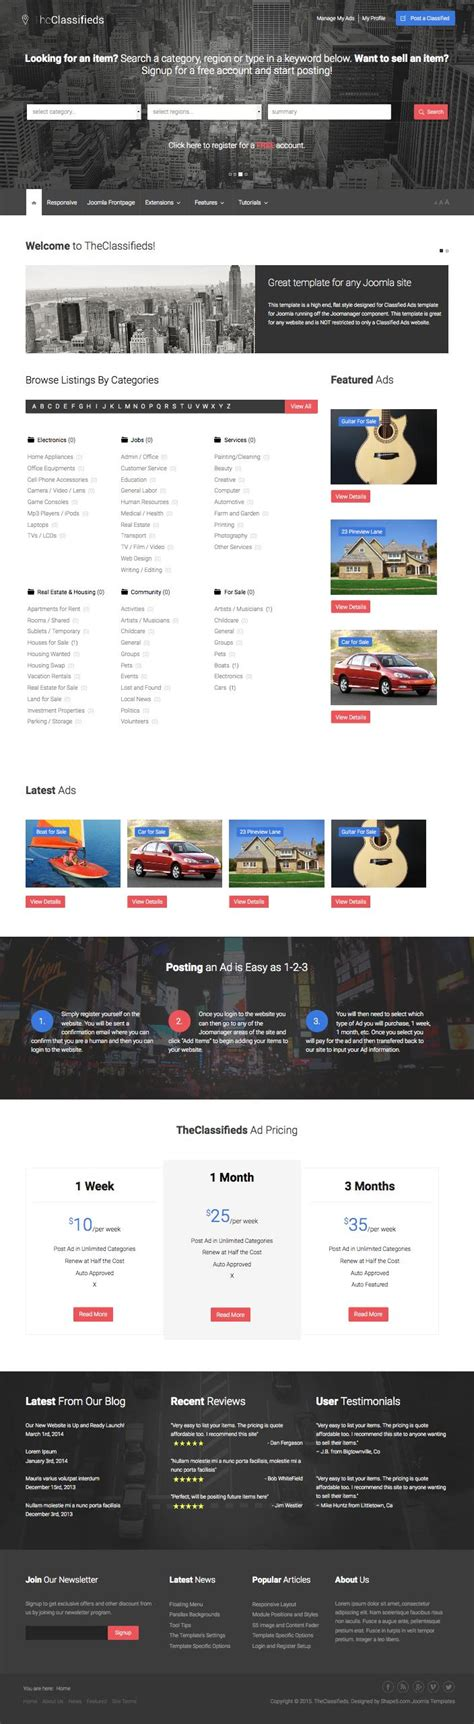 joomla template listing theclassifieds joomla template for ads listings directory